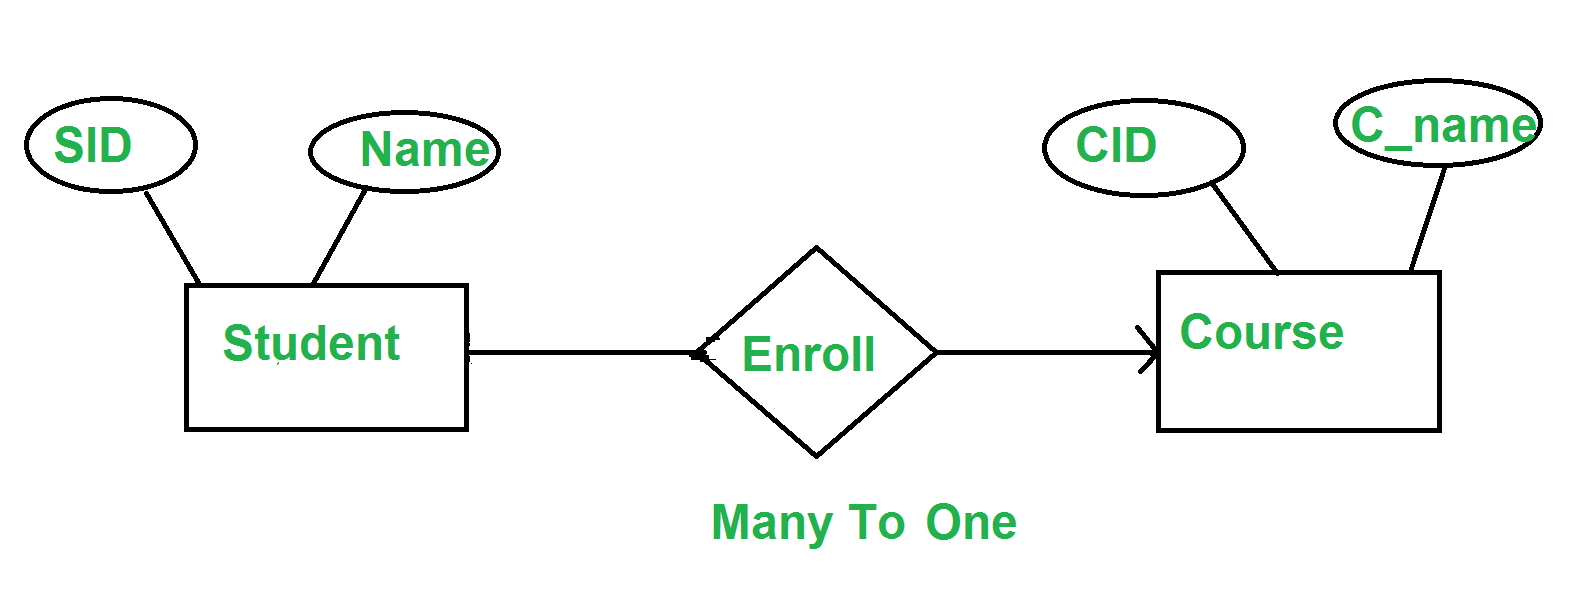 Minimization Of Er Diagrams - Geeksforgeeks intended for One To Many Relationship Diagram